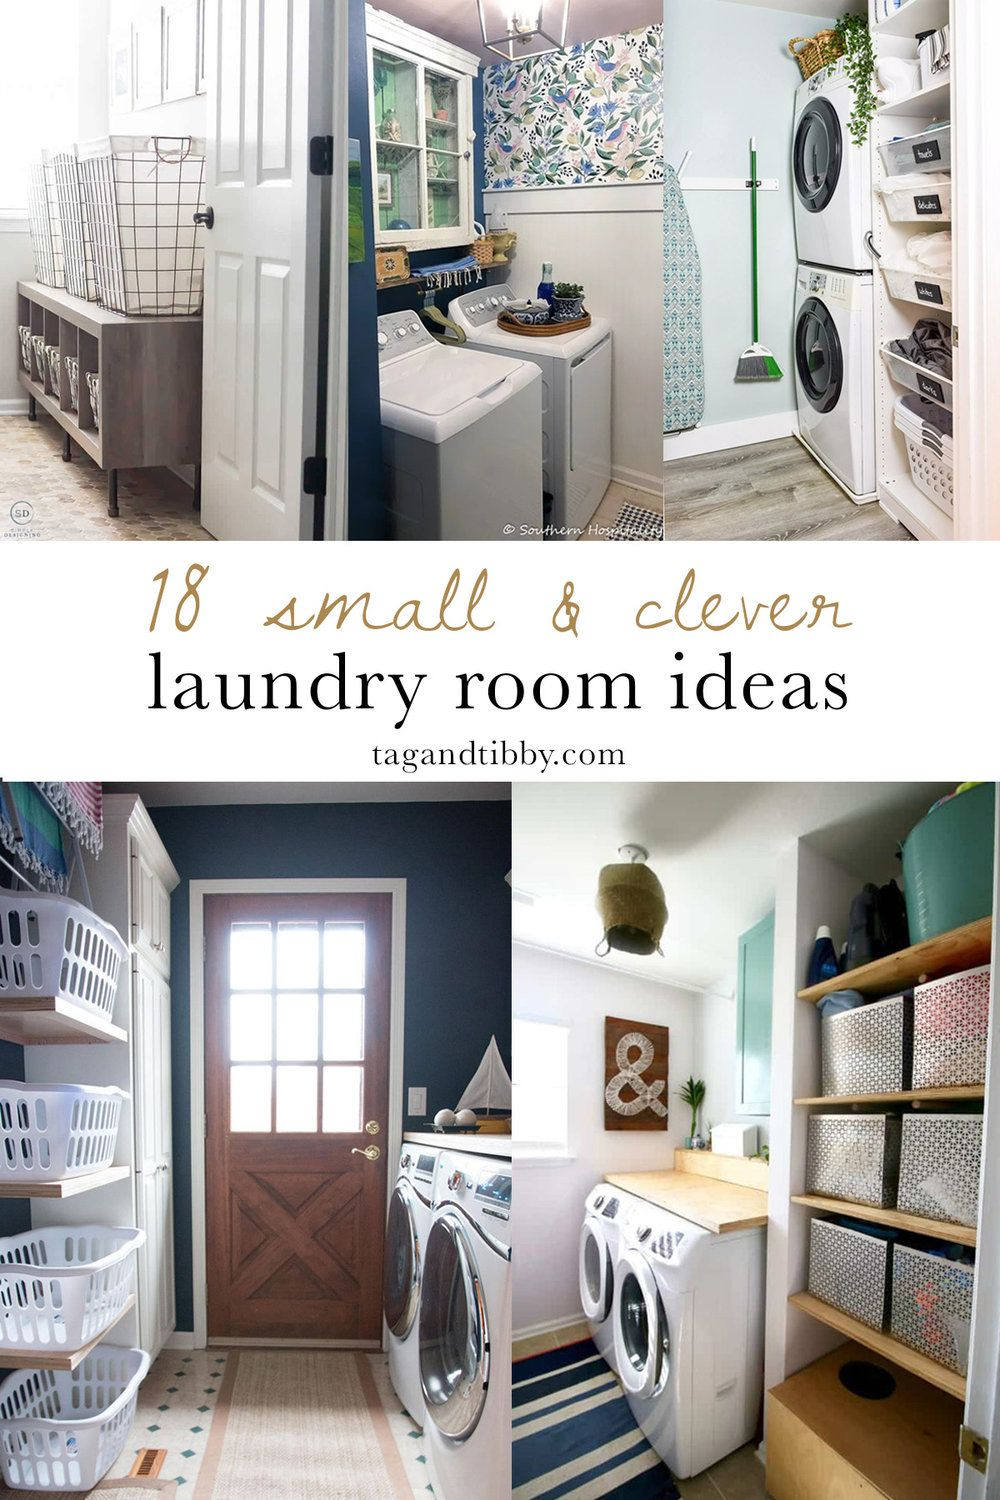 Pin on Home: Laundry Room